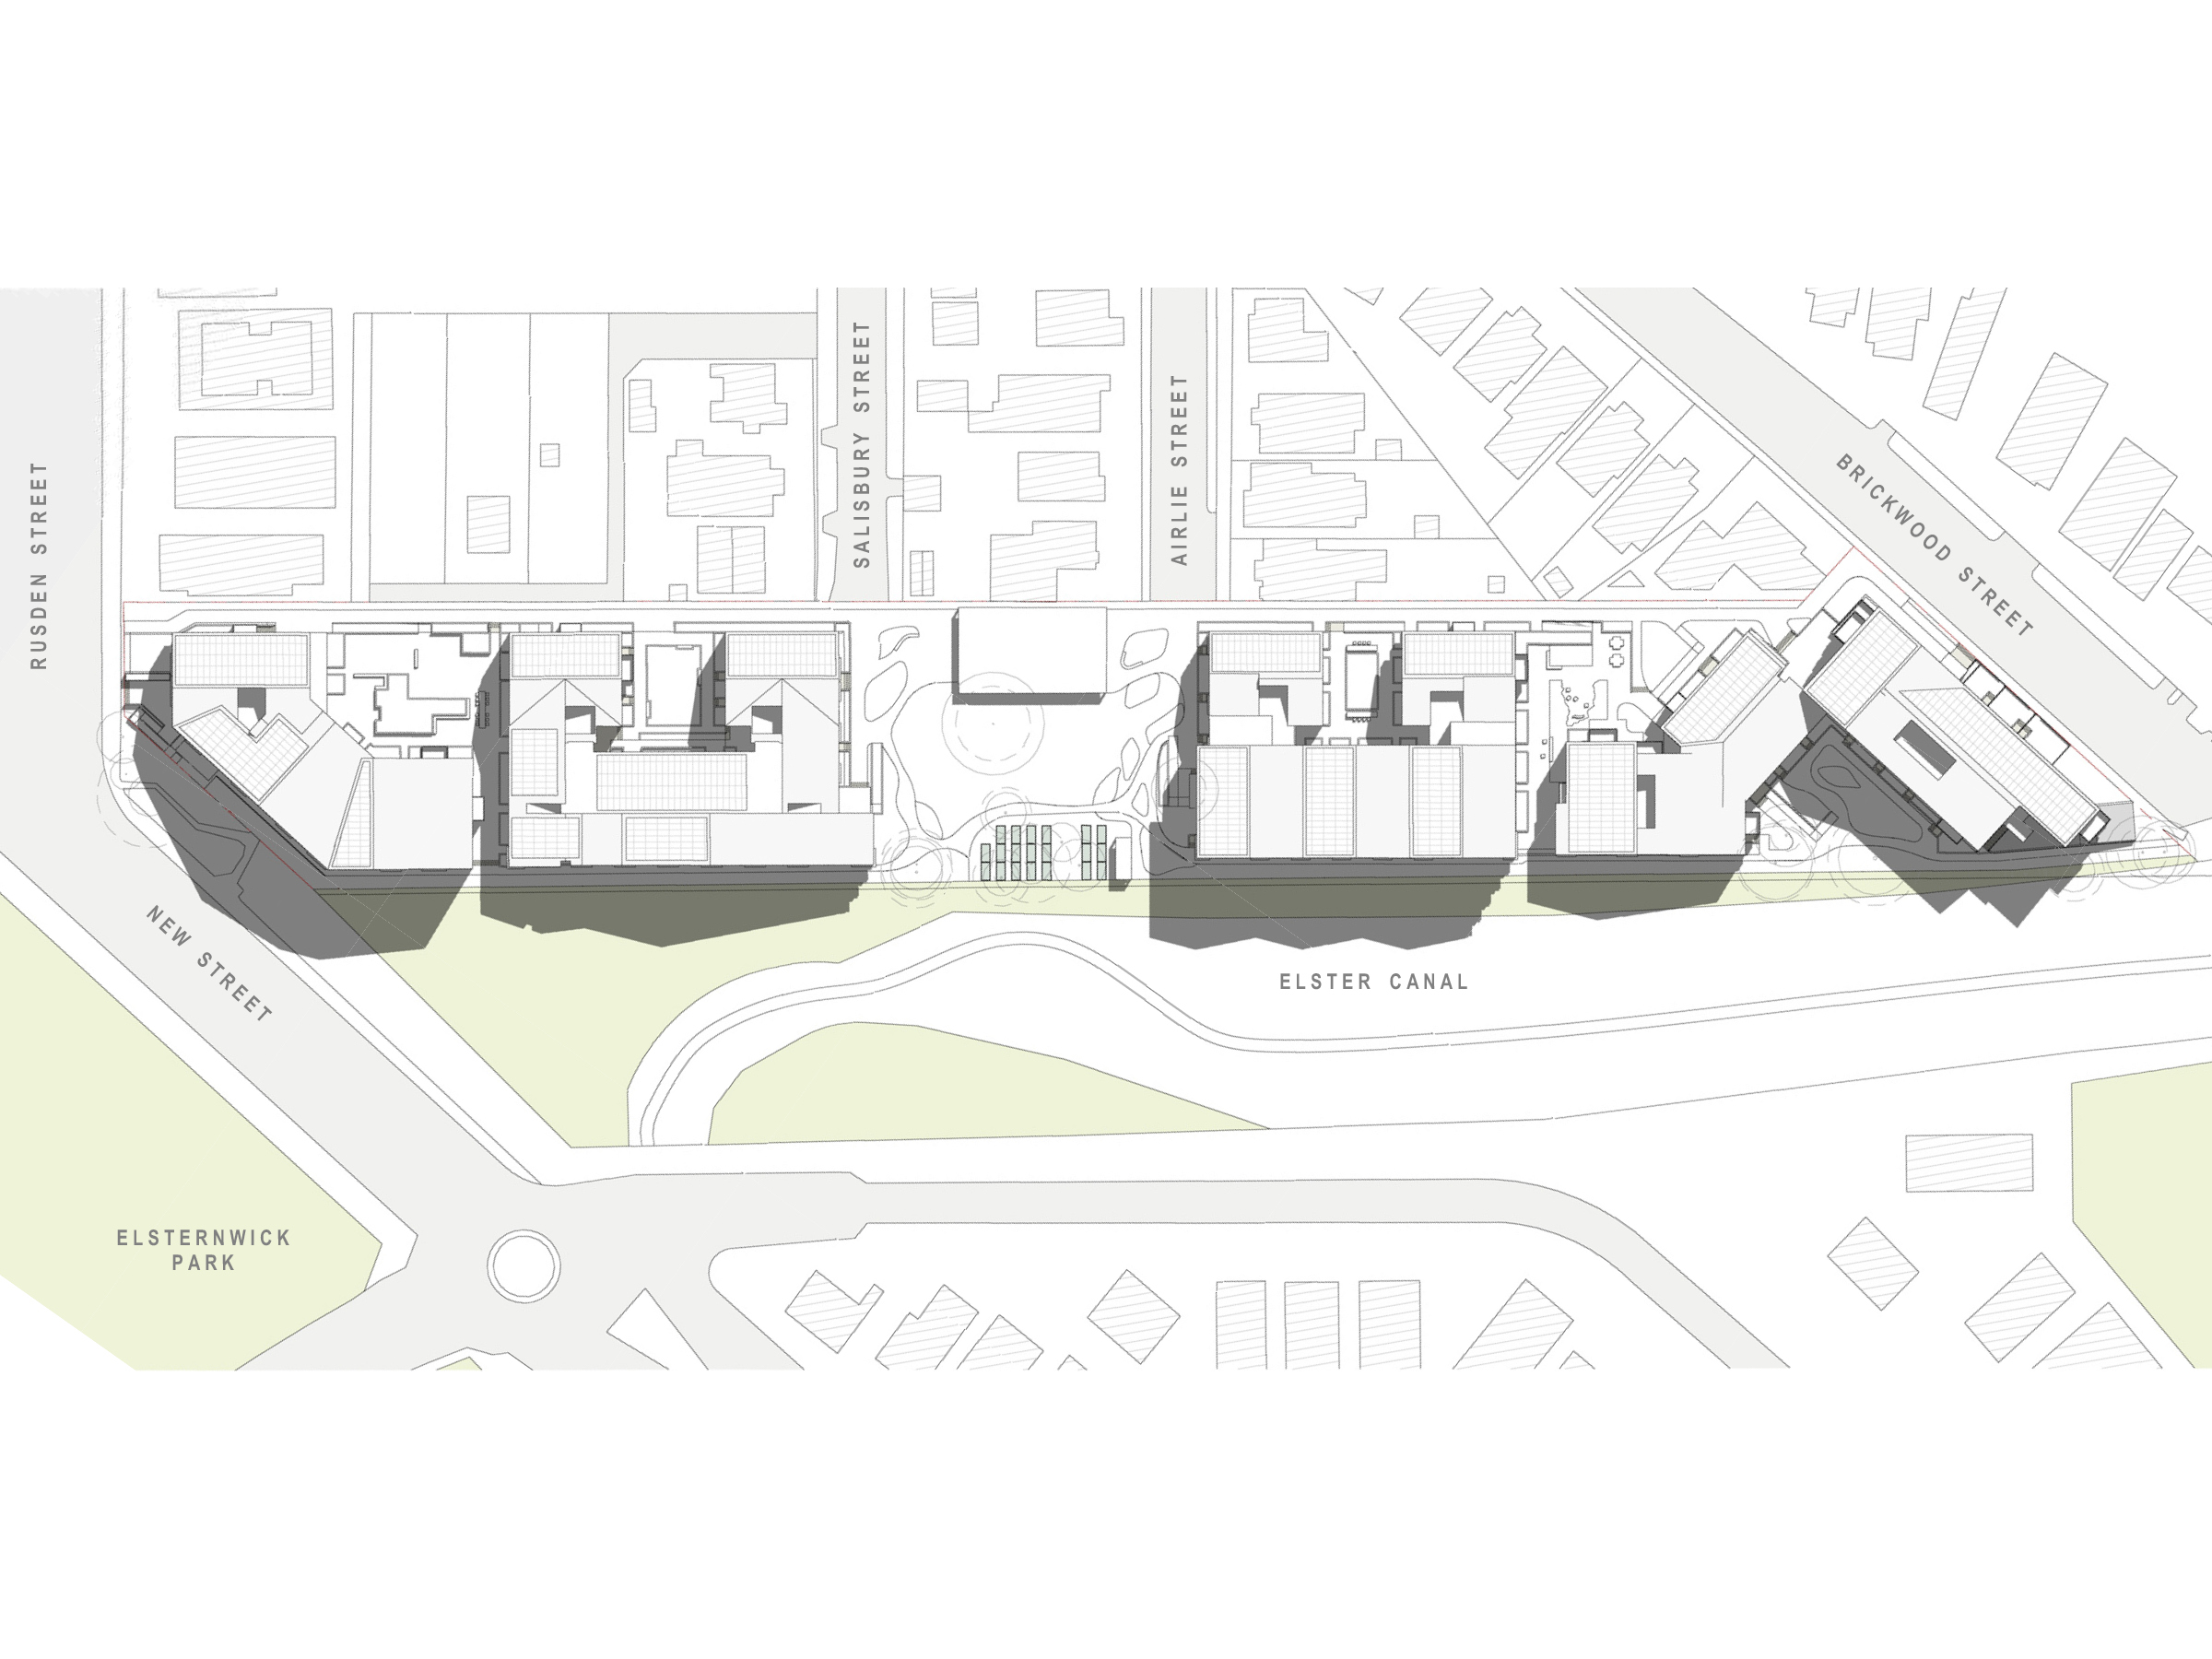 Diagram showing the shadows created by the new development in December at 9am